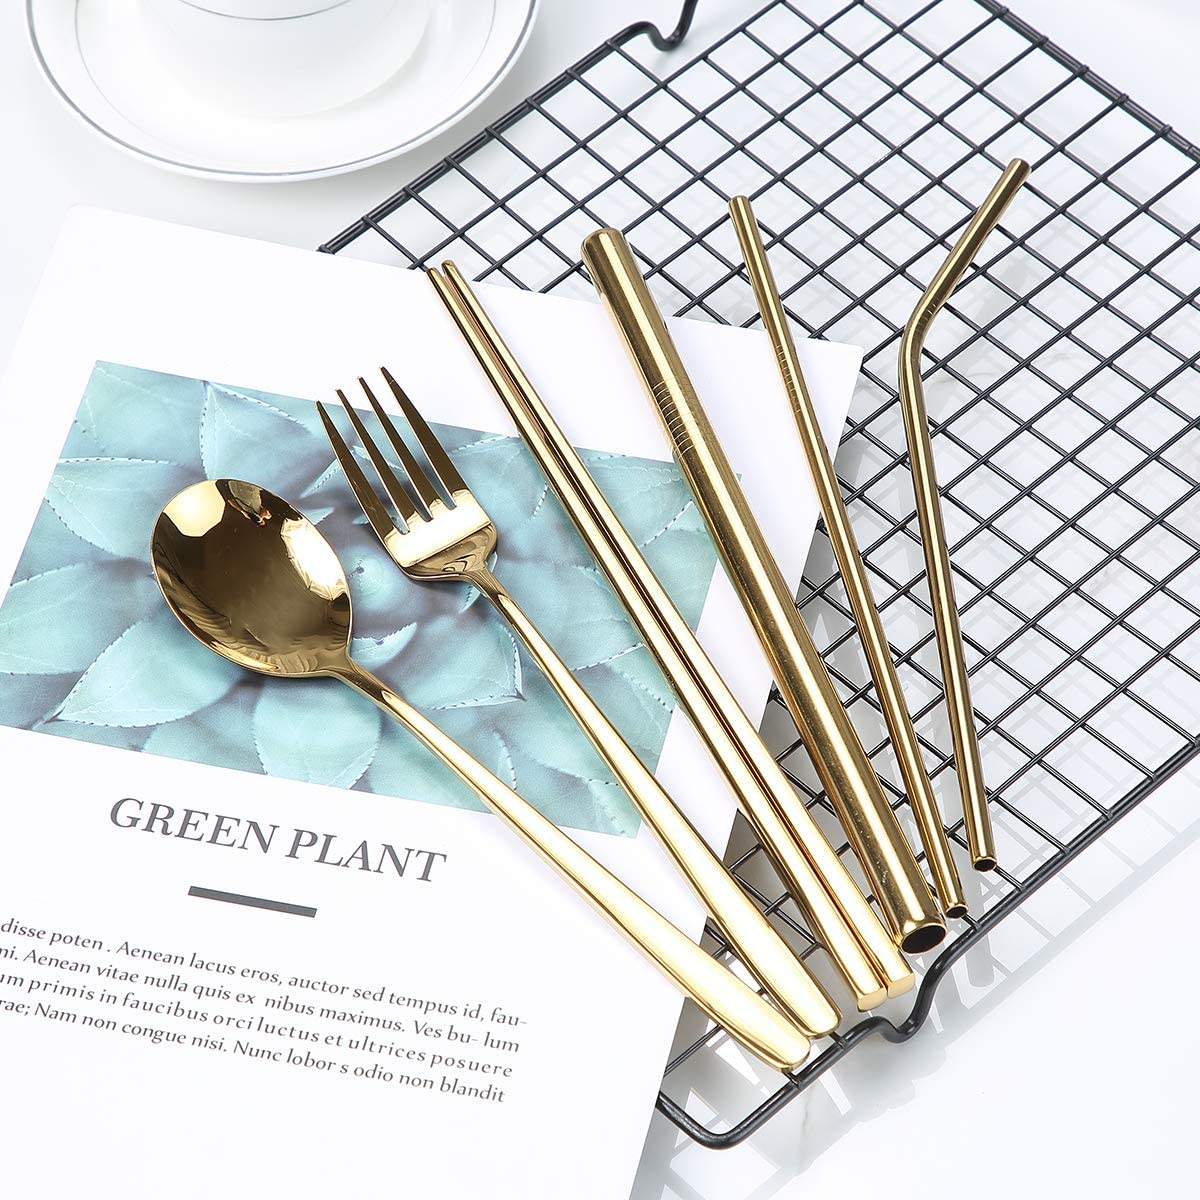 Portable Cutlery Set Travel Camping Home Office Tableware Bulk with Reusable Stainless Steel Cutlery Set Including Cutlery Spoon Straw Chopsticks Cleaning Brush Eco-friendly Gold